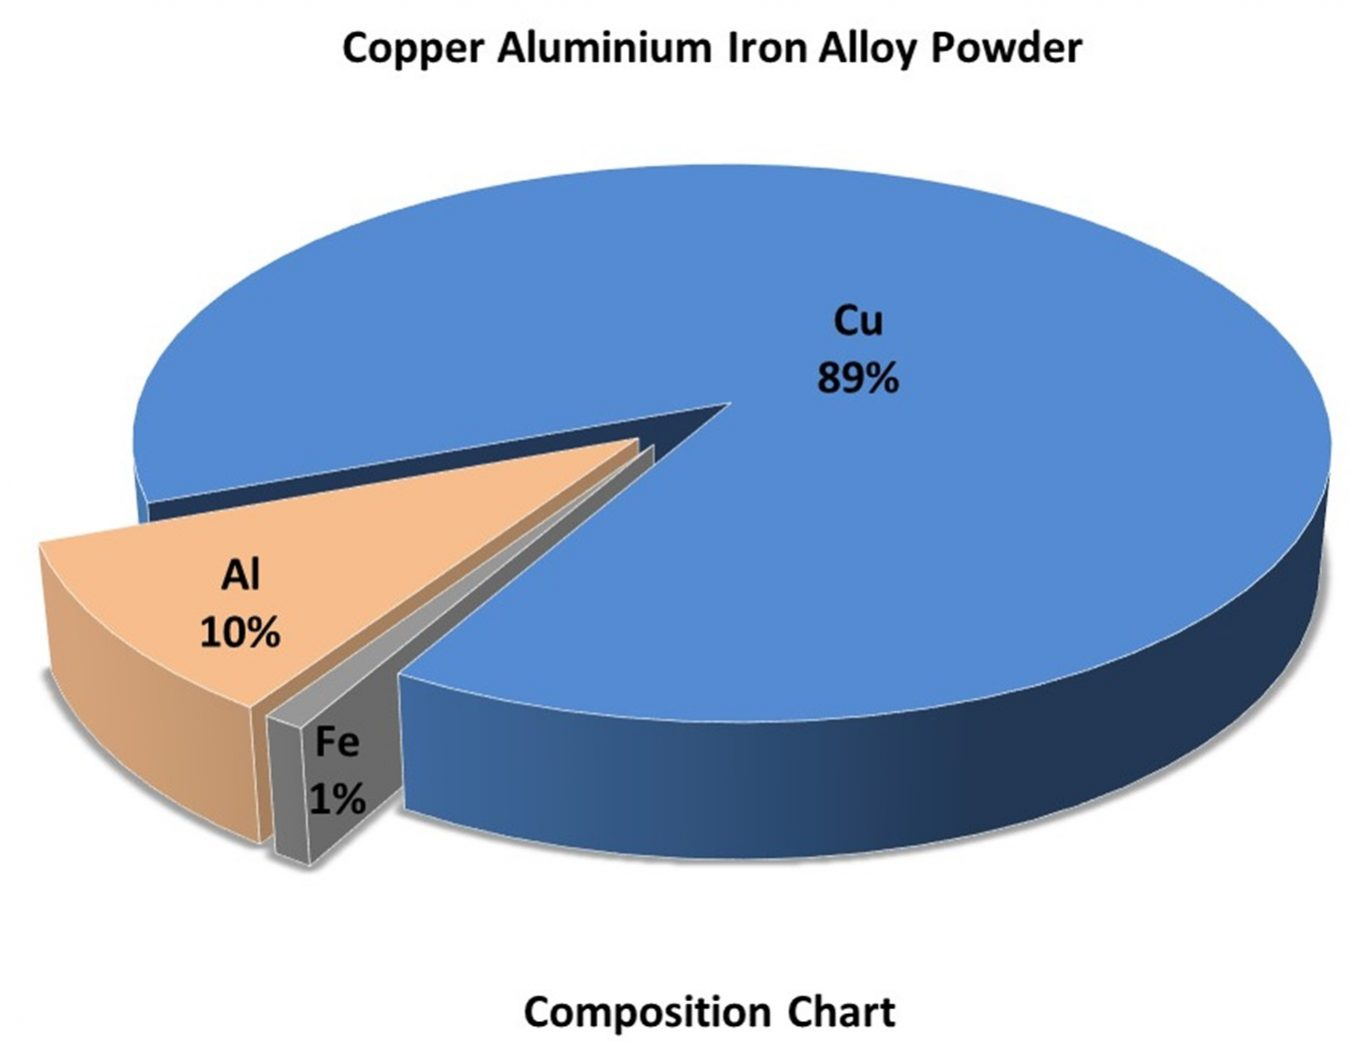 Composition Chart – Cu:Al:Fe Powder